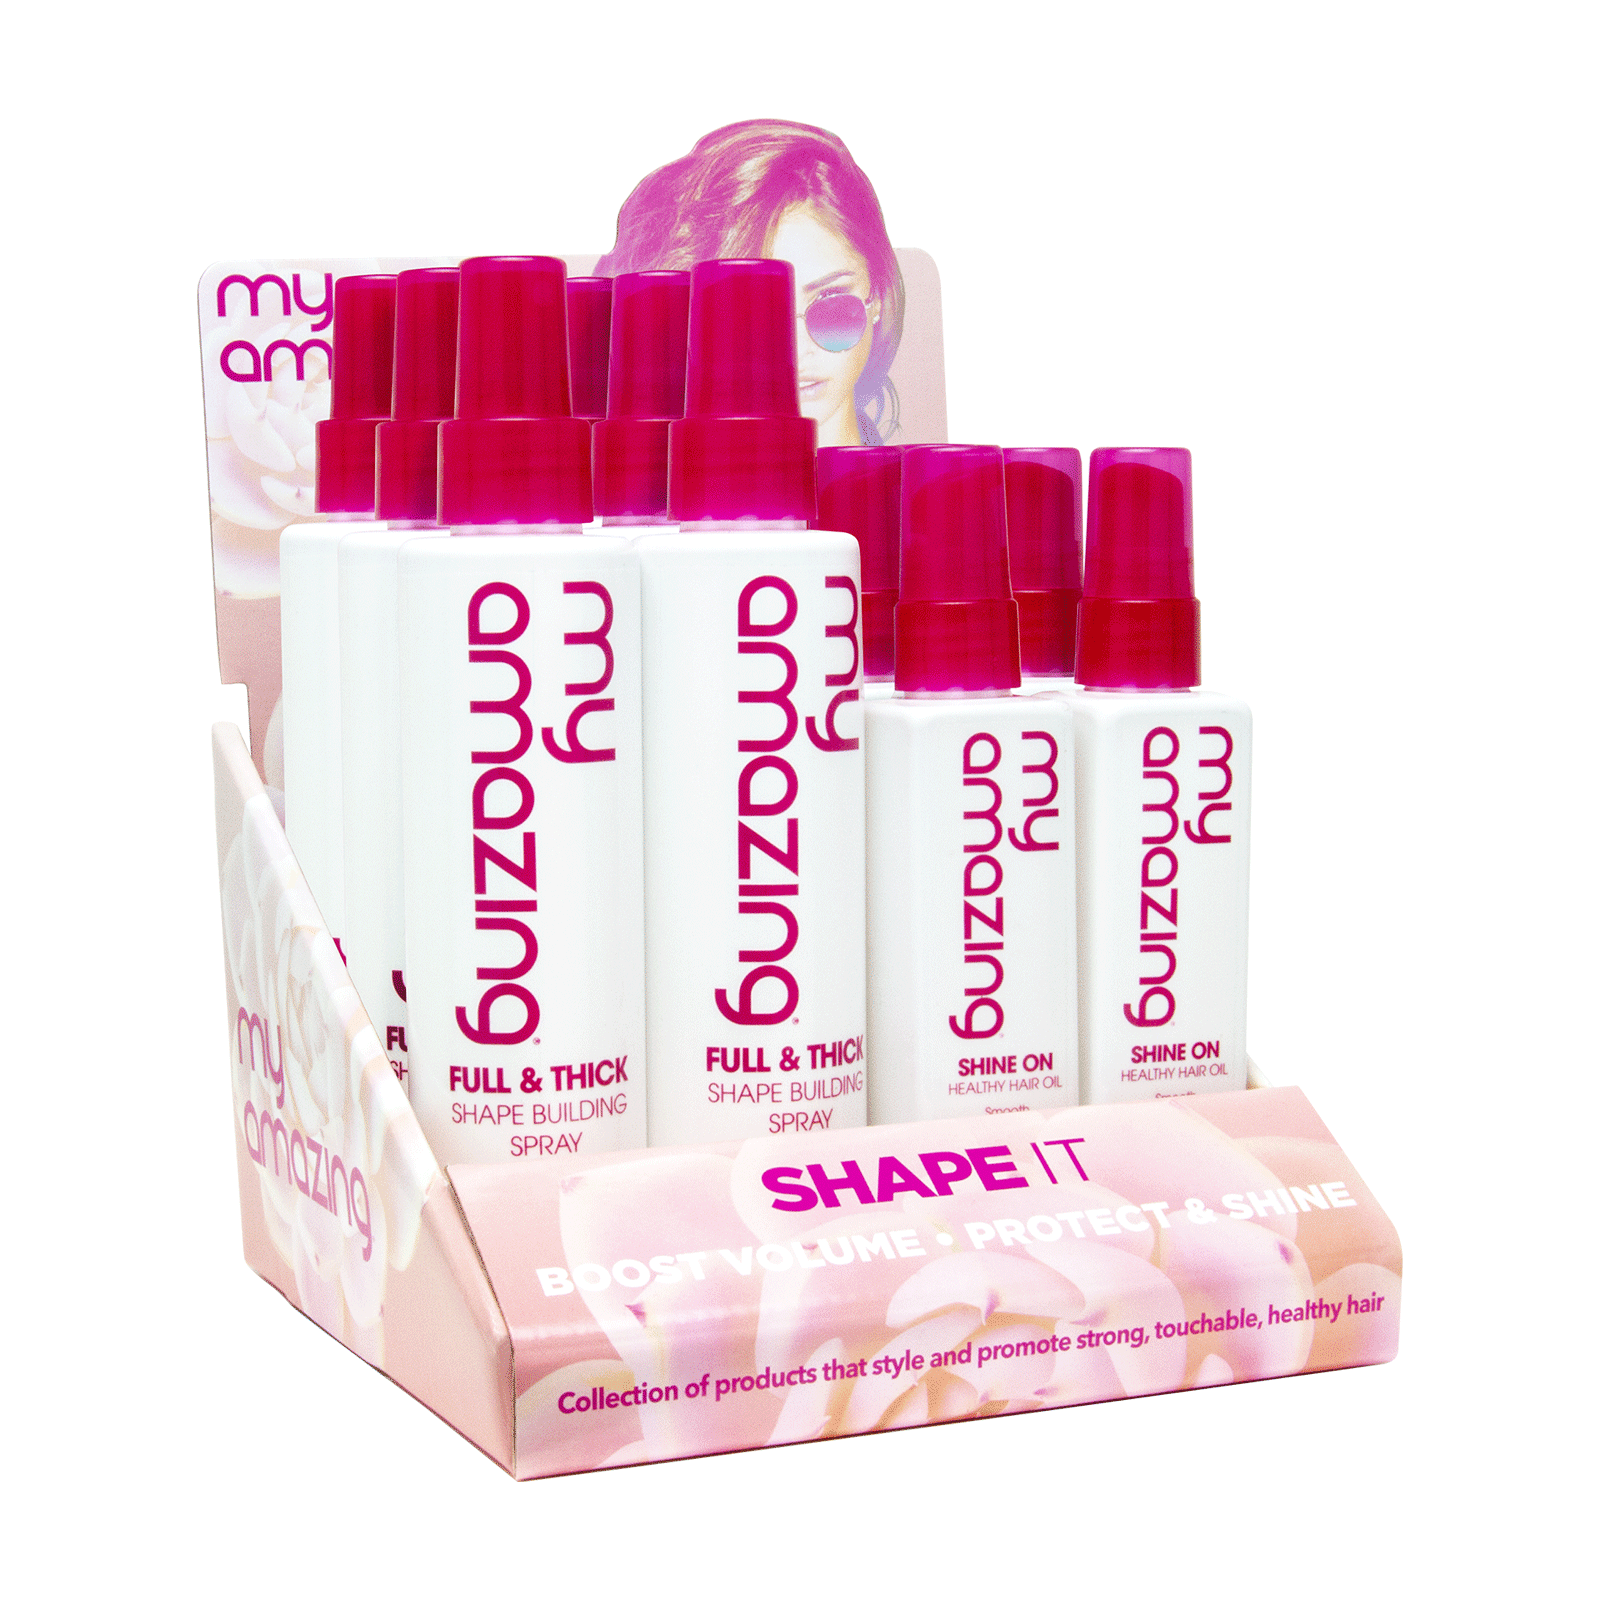 Shape Building Spray,Shine Healthy Hair Oil-12 Piece Display